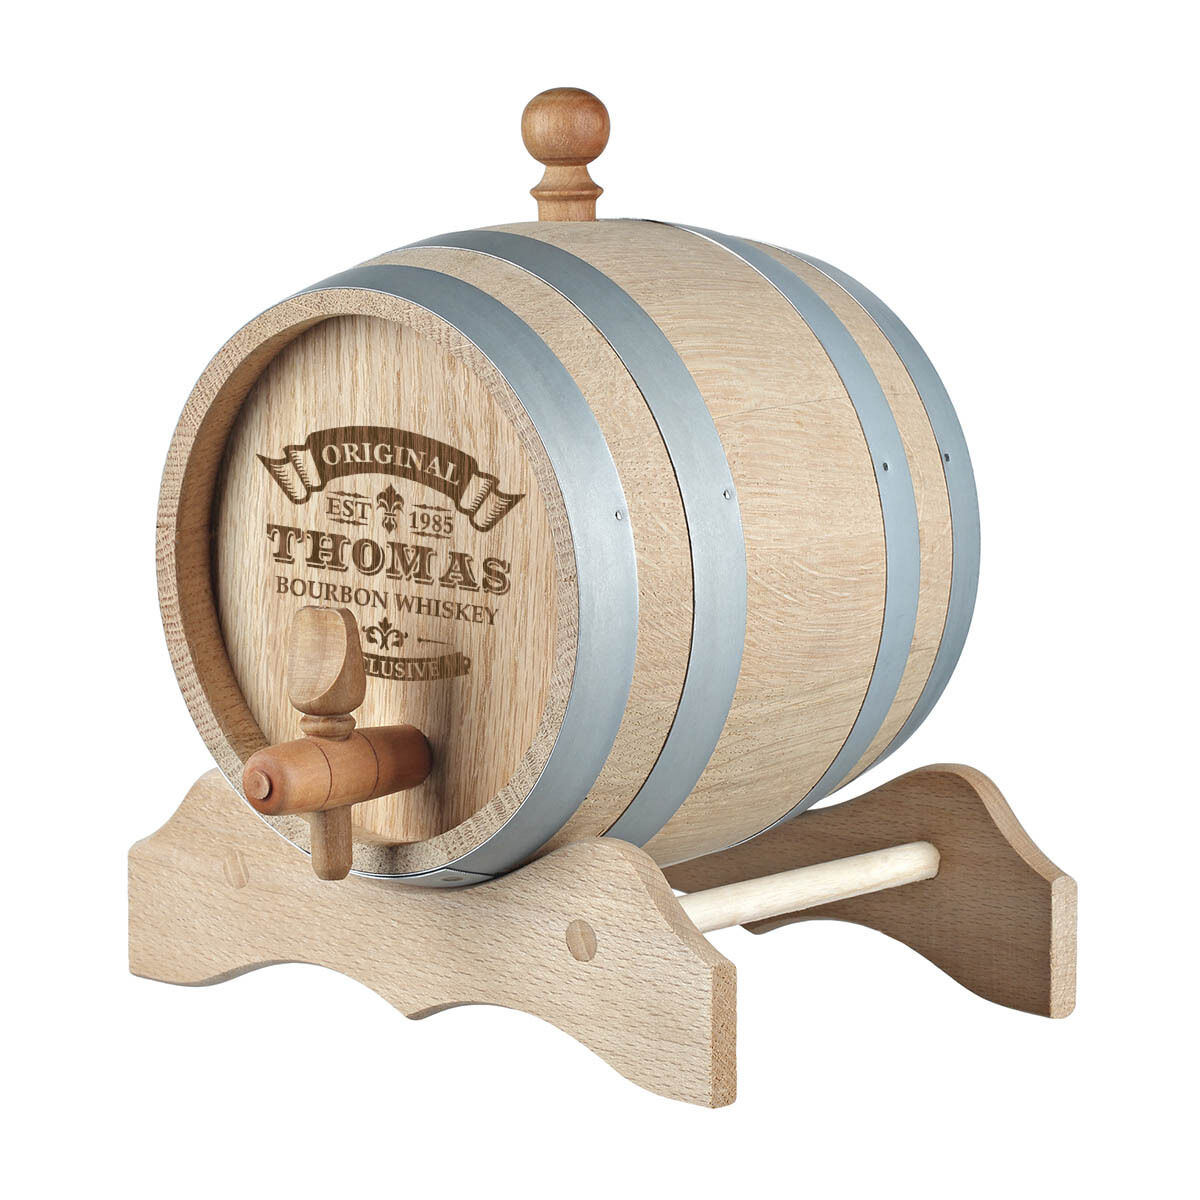 Tonneau whiskyfass incl. Gravure motif original-exclusif